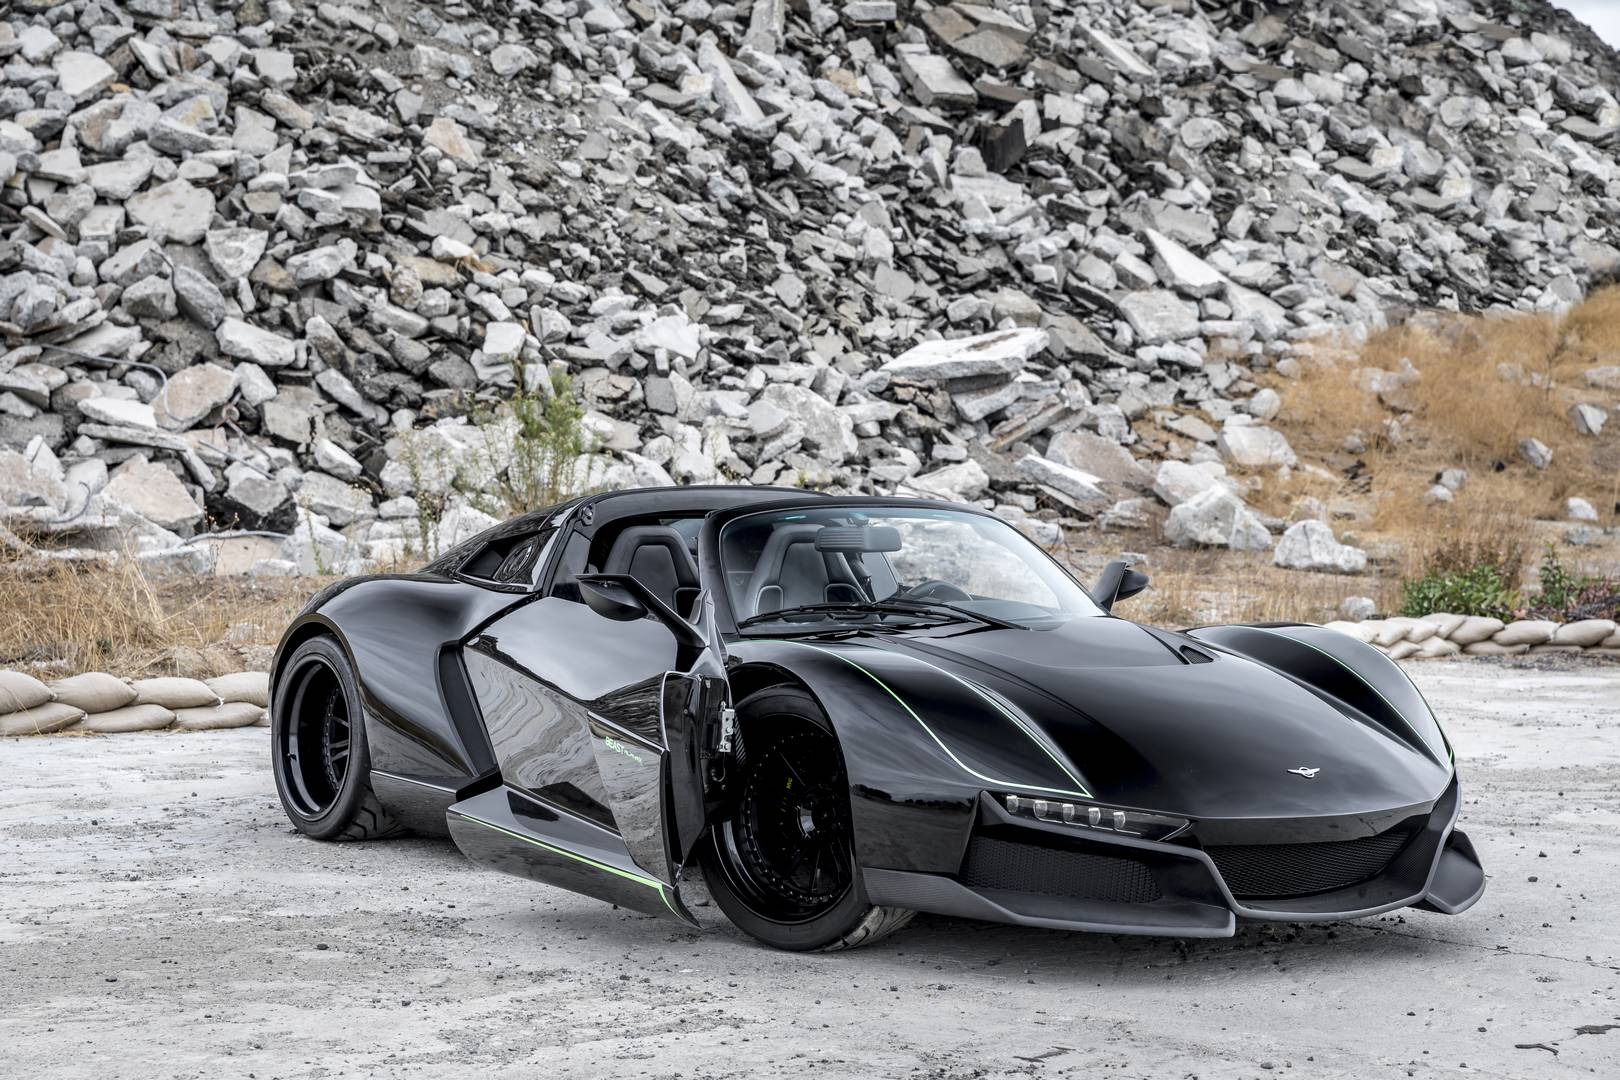 Official: 700hp Rezvani Beast Alpha X 'Blackbird' – Only 5 Units